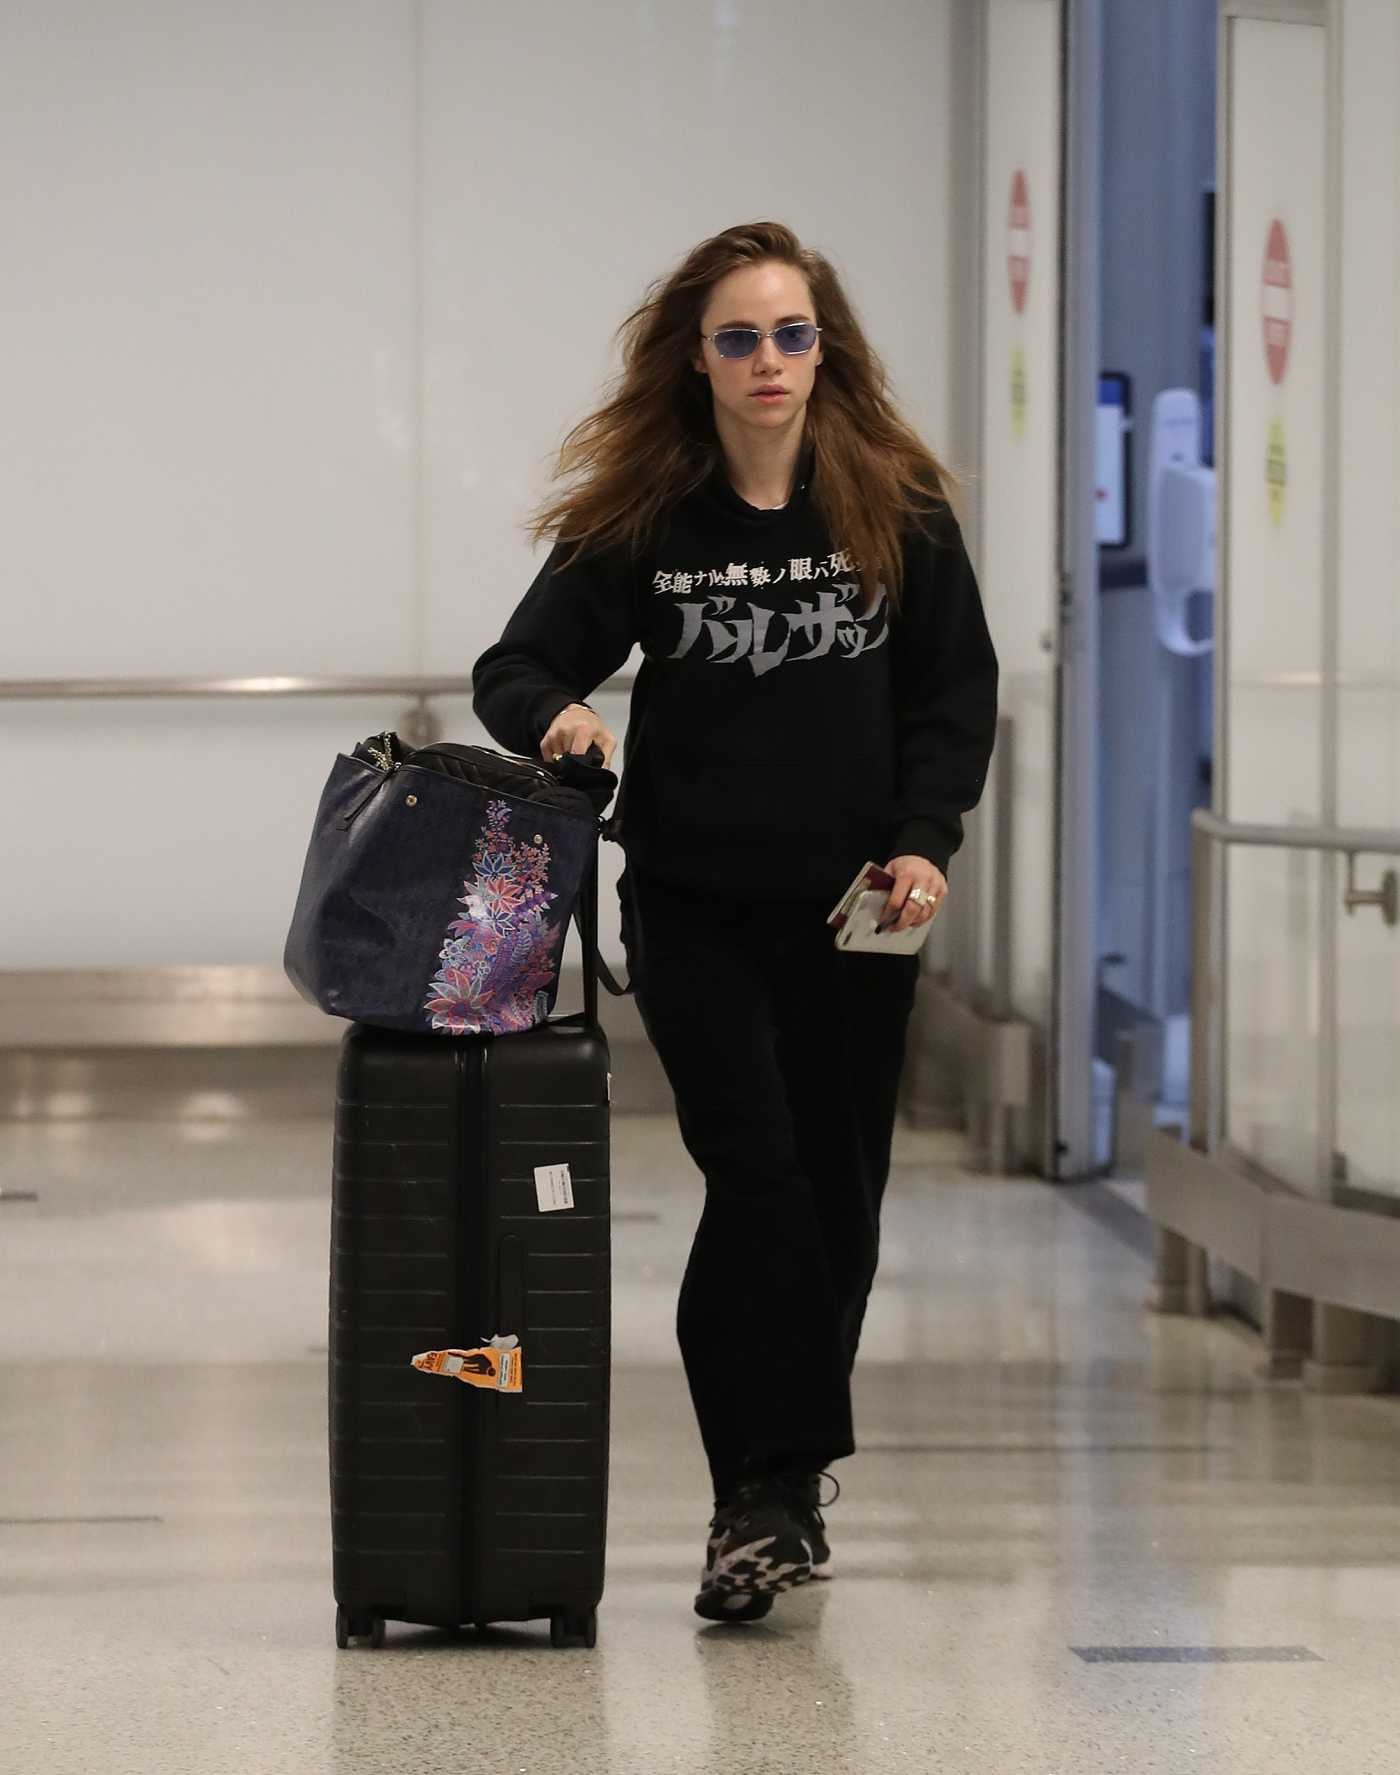 Suki Waterhouse in a Black Hoody Arrives at LAX Airport in Los Angeles 02/17/2020